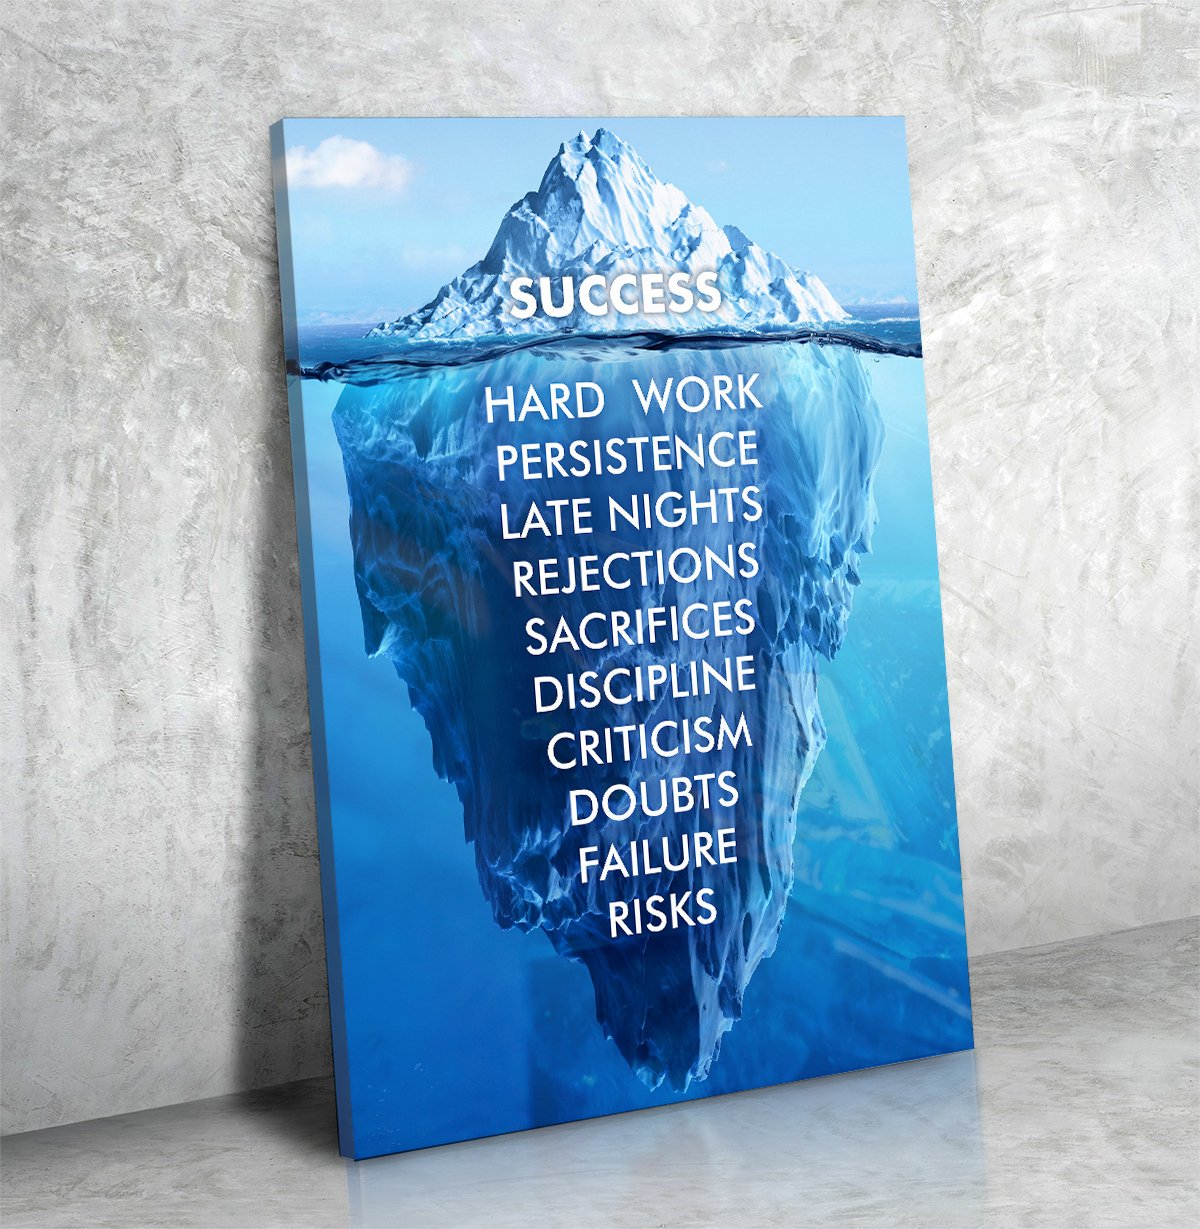 Persistence Quotes For Work: Success Hard Work Persistence Quote Success Is An Iceberg